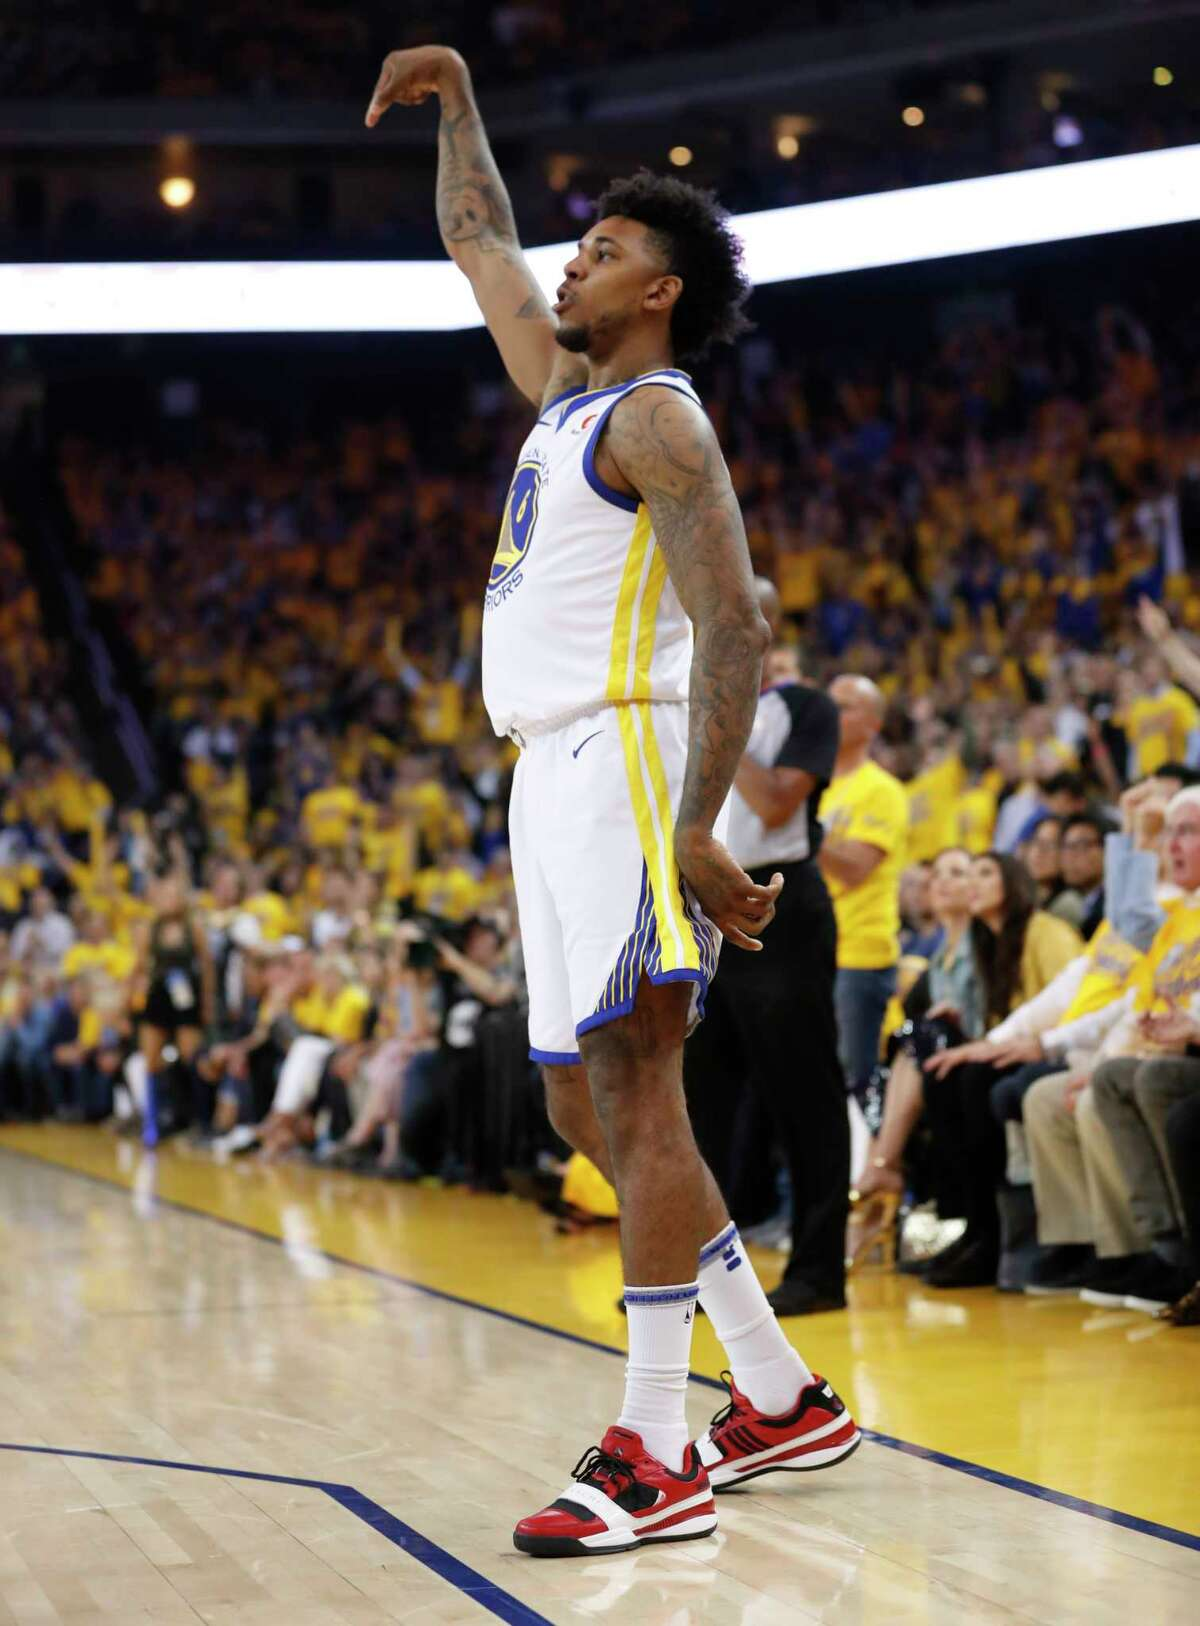 Golden State Warriors' Nick Young shoots a three-pointer in the first quarter during game 3 of the Western Conference Finals between the Golden State Warriors and the Houston Rockets at Oracle Arena on Sunday, May 20, 2018 in Oakland, Calif.